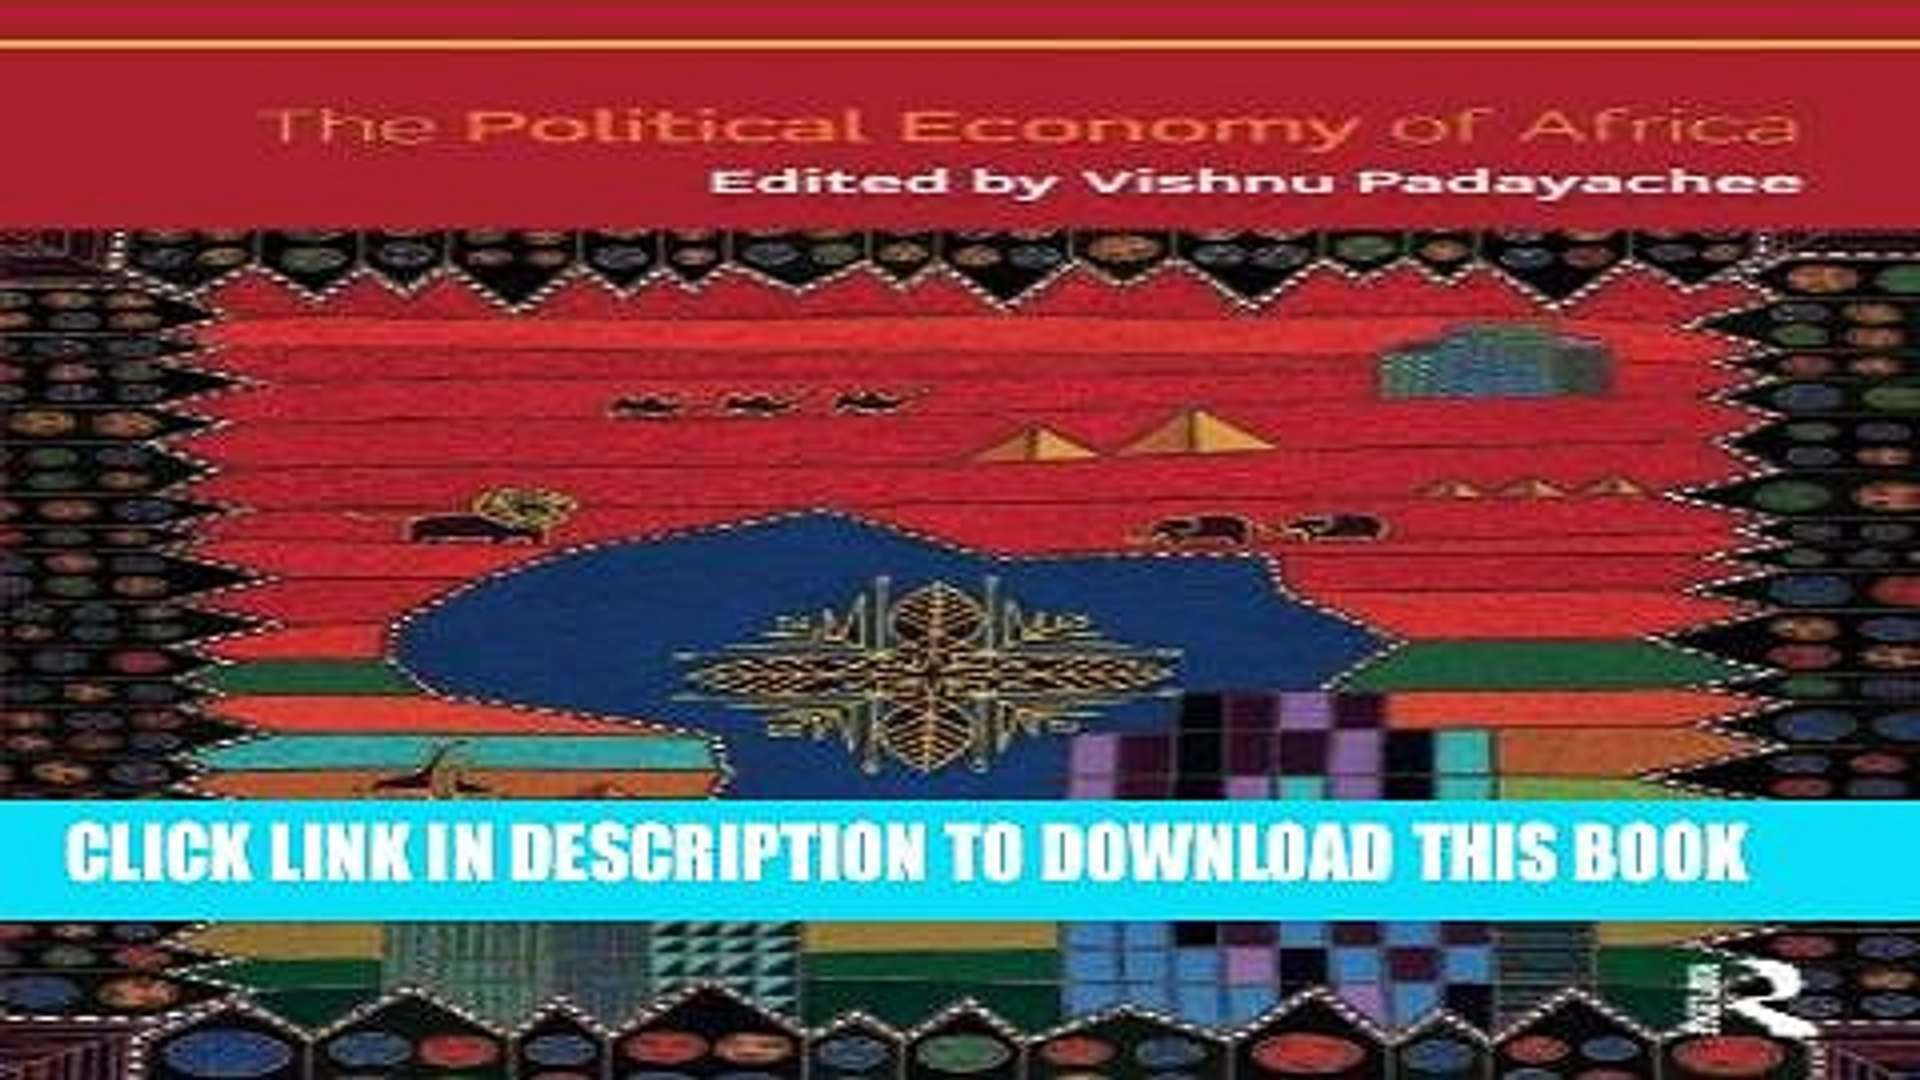 [READ] Mobi The Political Economy of Africa Free Download